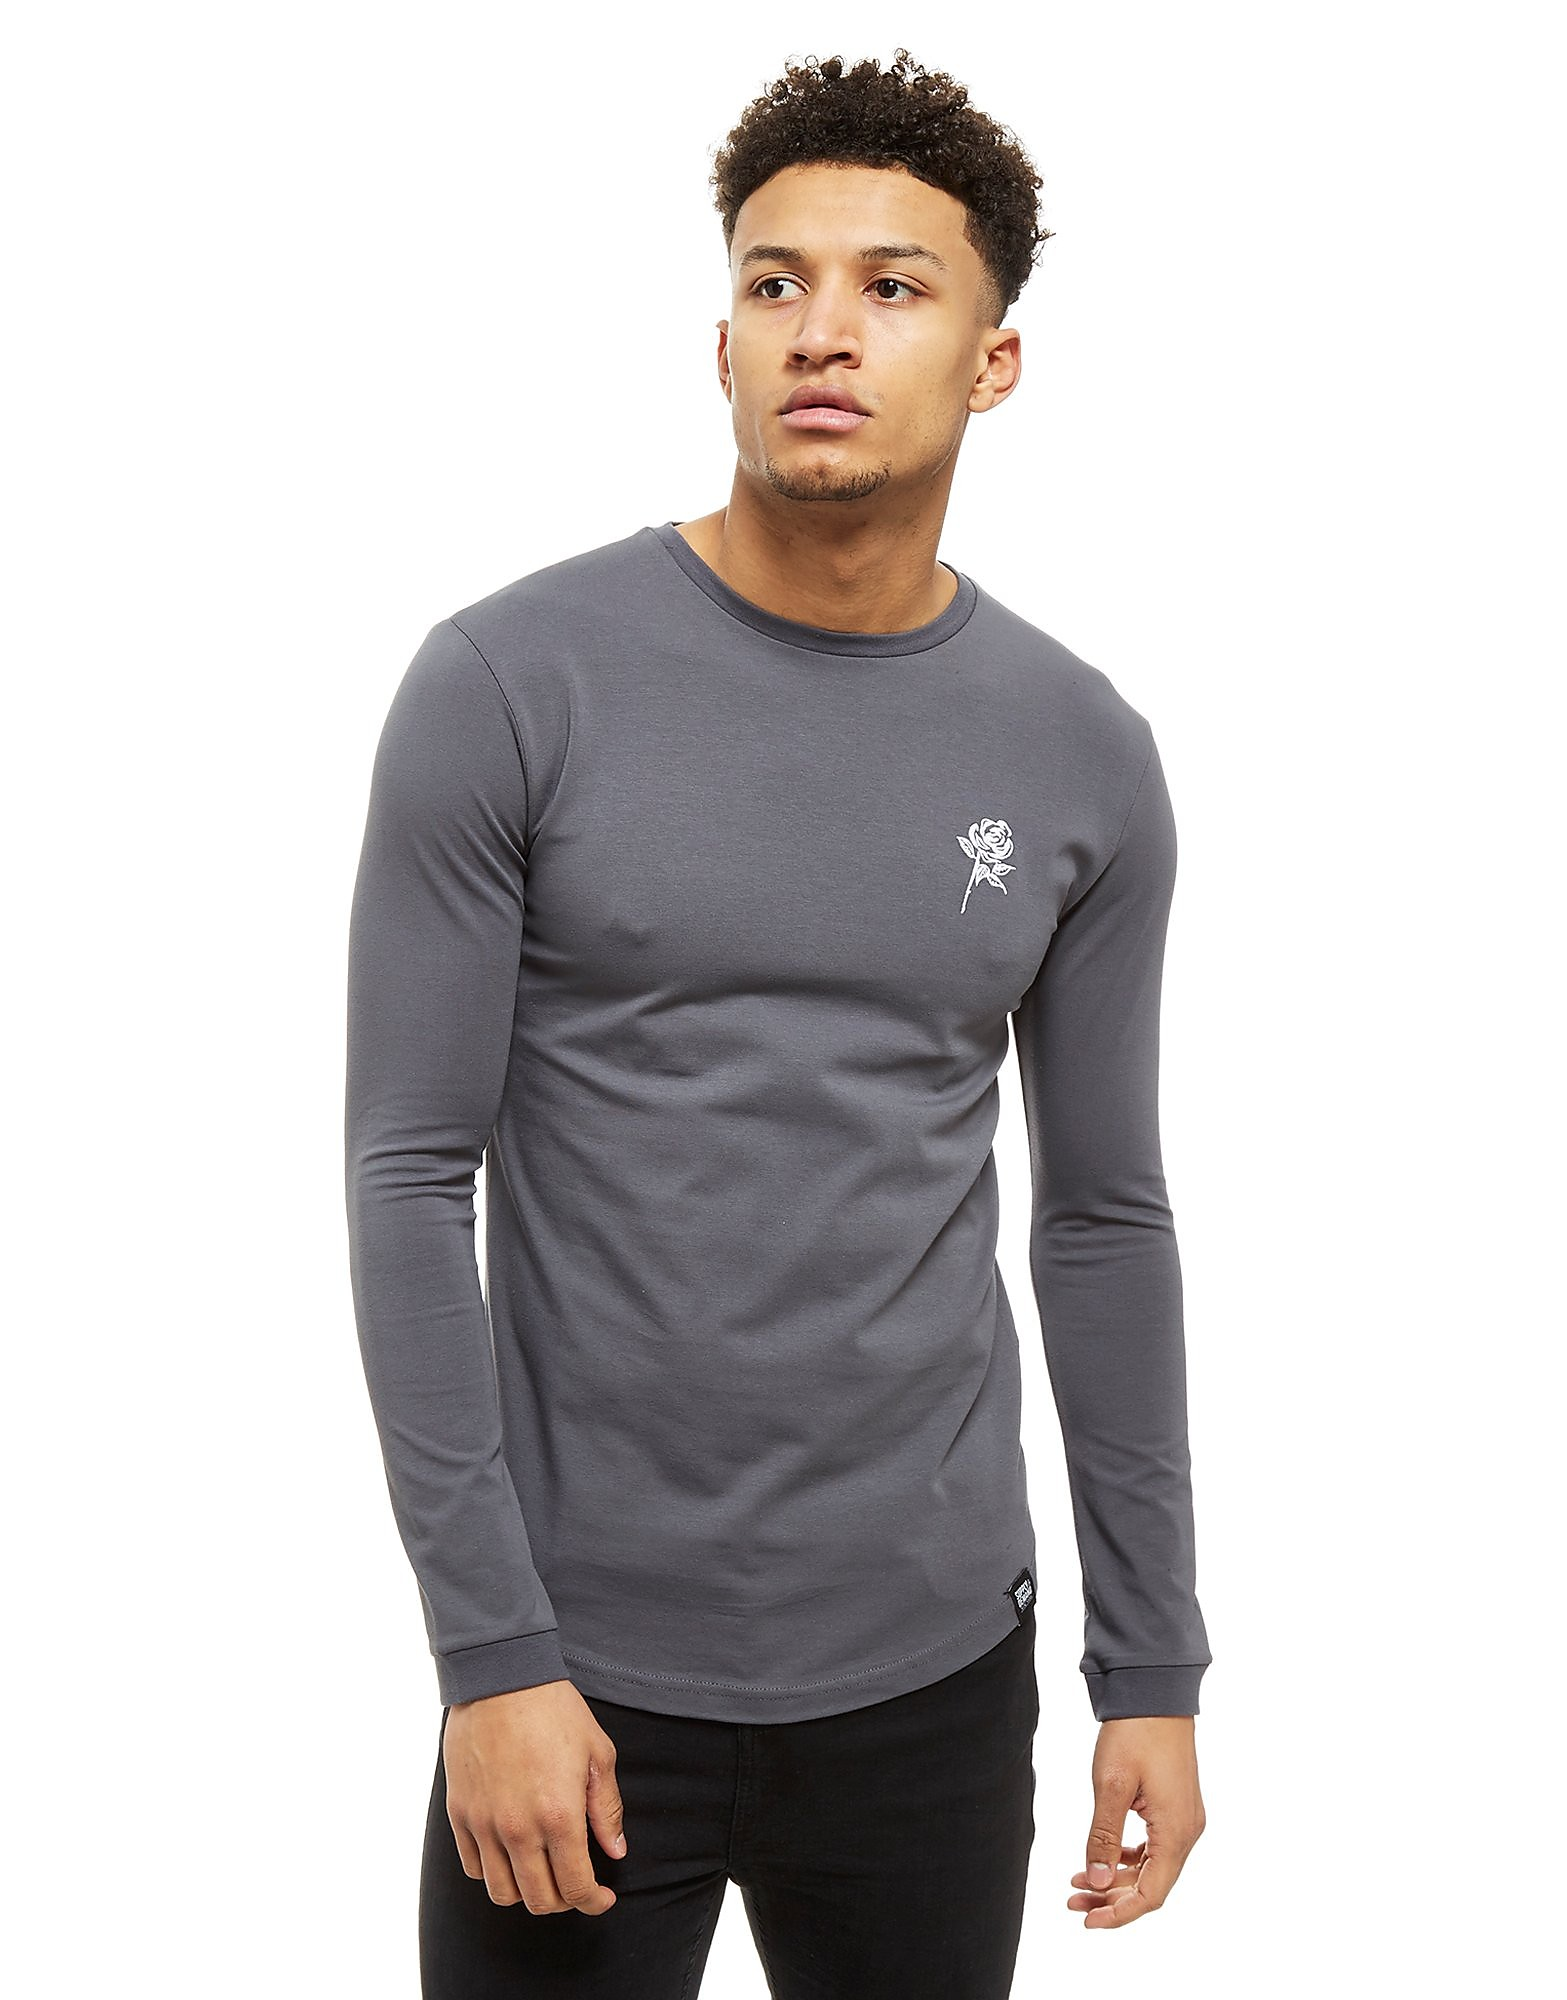 Supply & Demand Reps Long Sleeve T-Shirt - Only at JD, Grey